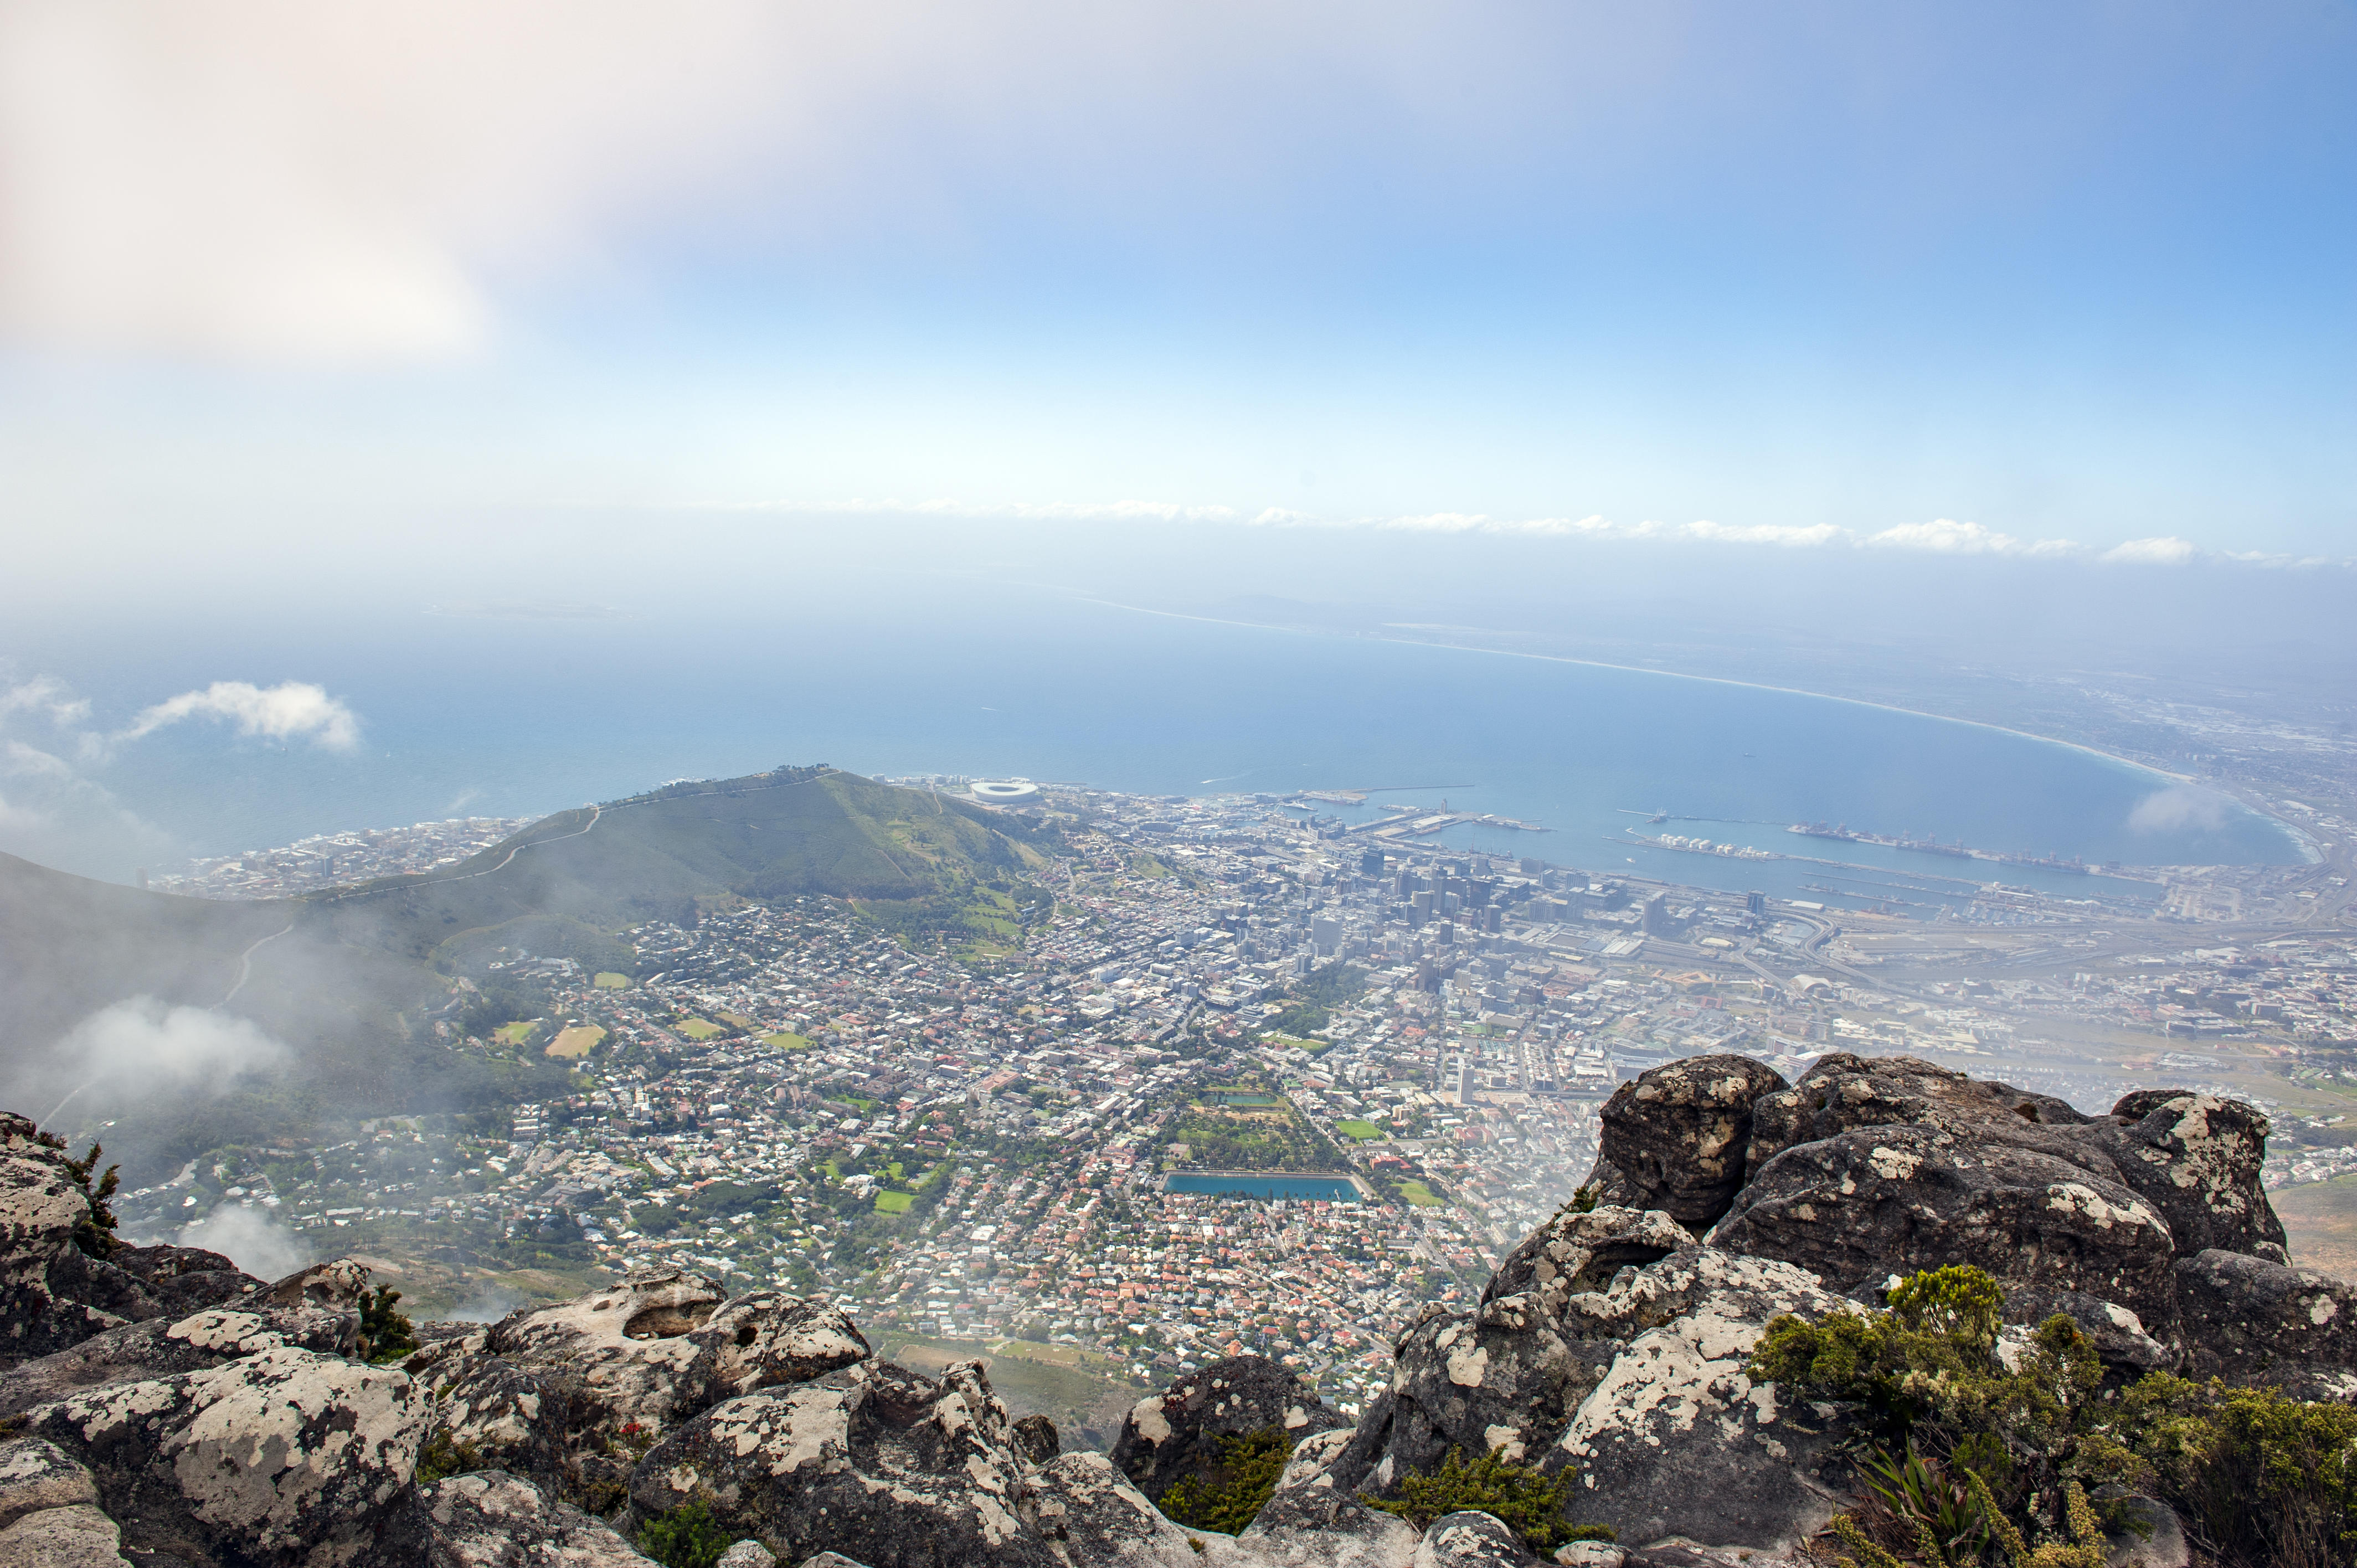 The city of Cape Town as seen from Table Mountain, flat-